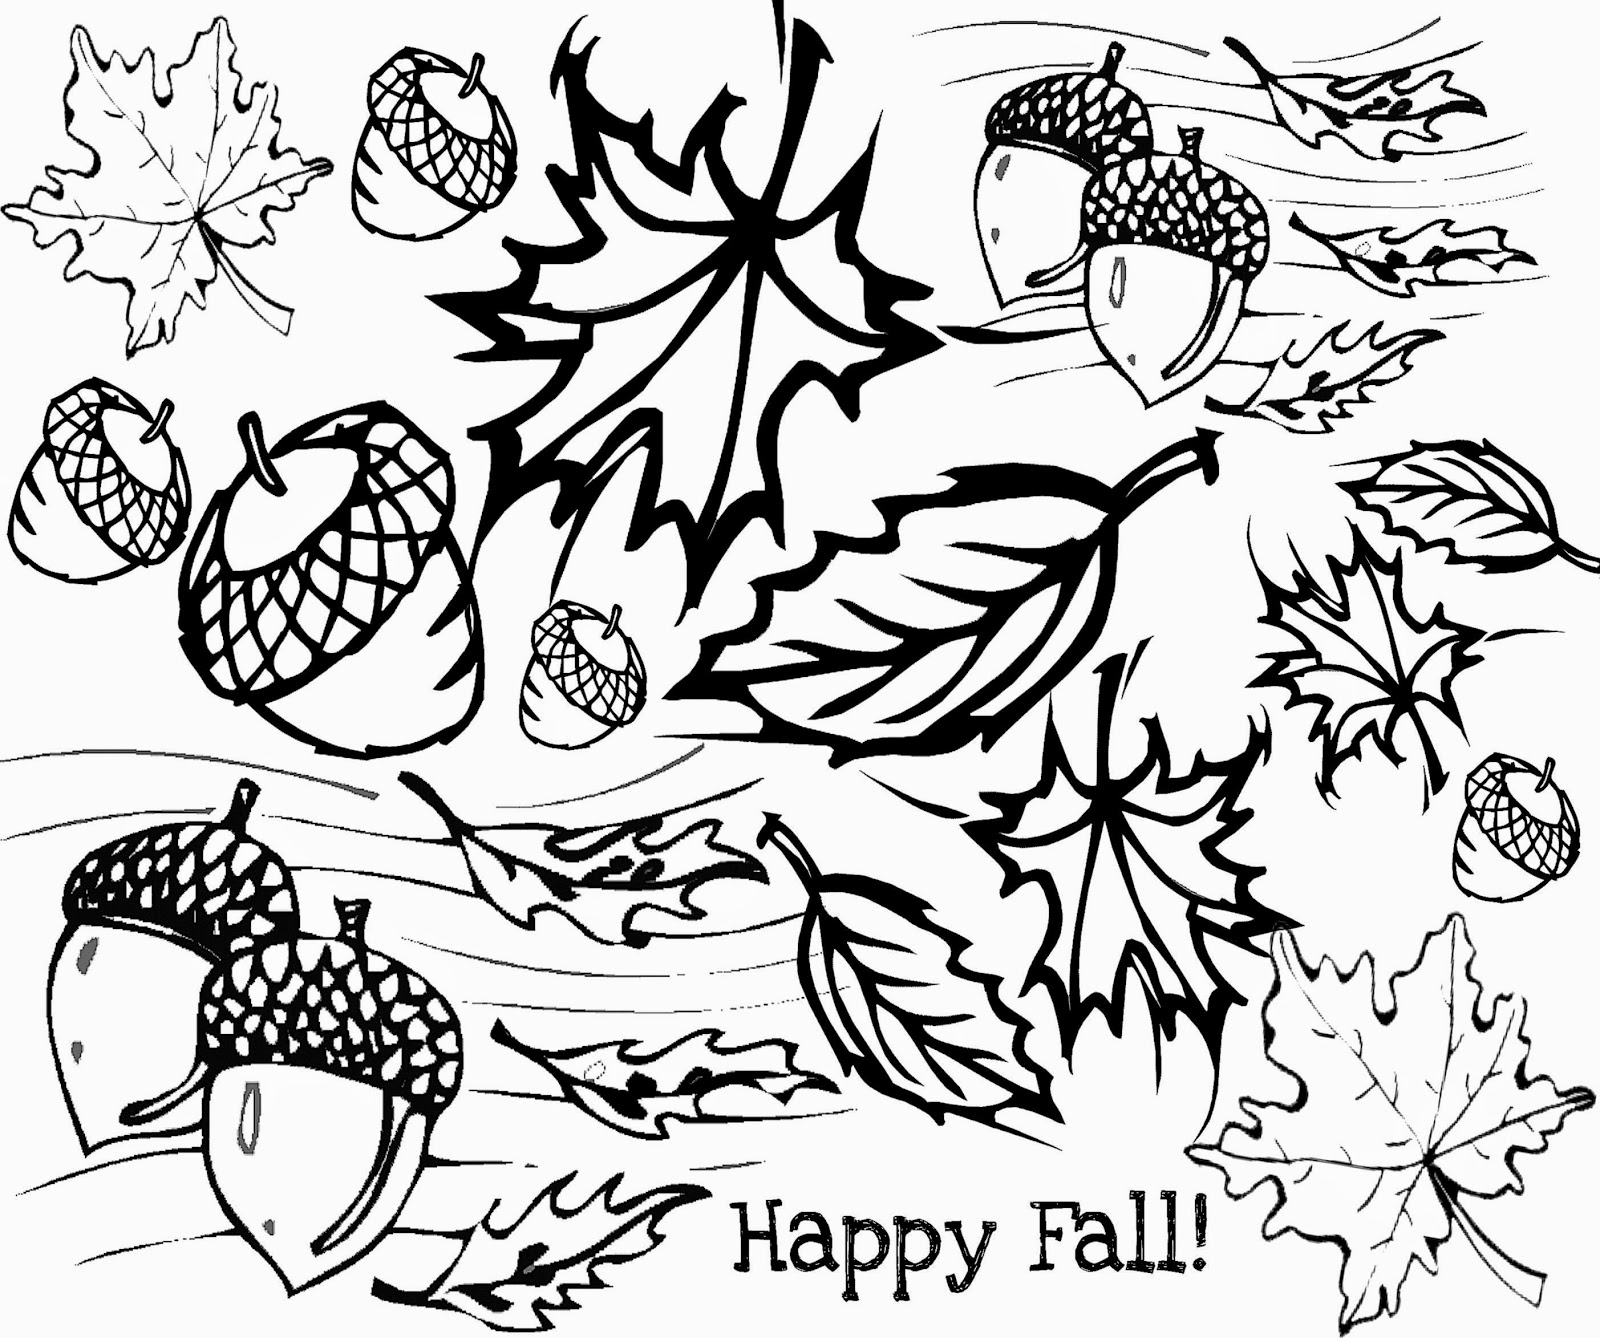 Fall Coloring Page Free Printable Fall Coloring Pages Ideas Of High Tech Pictures To